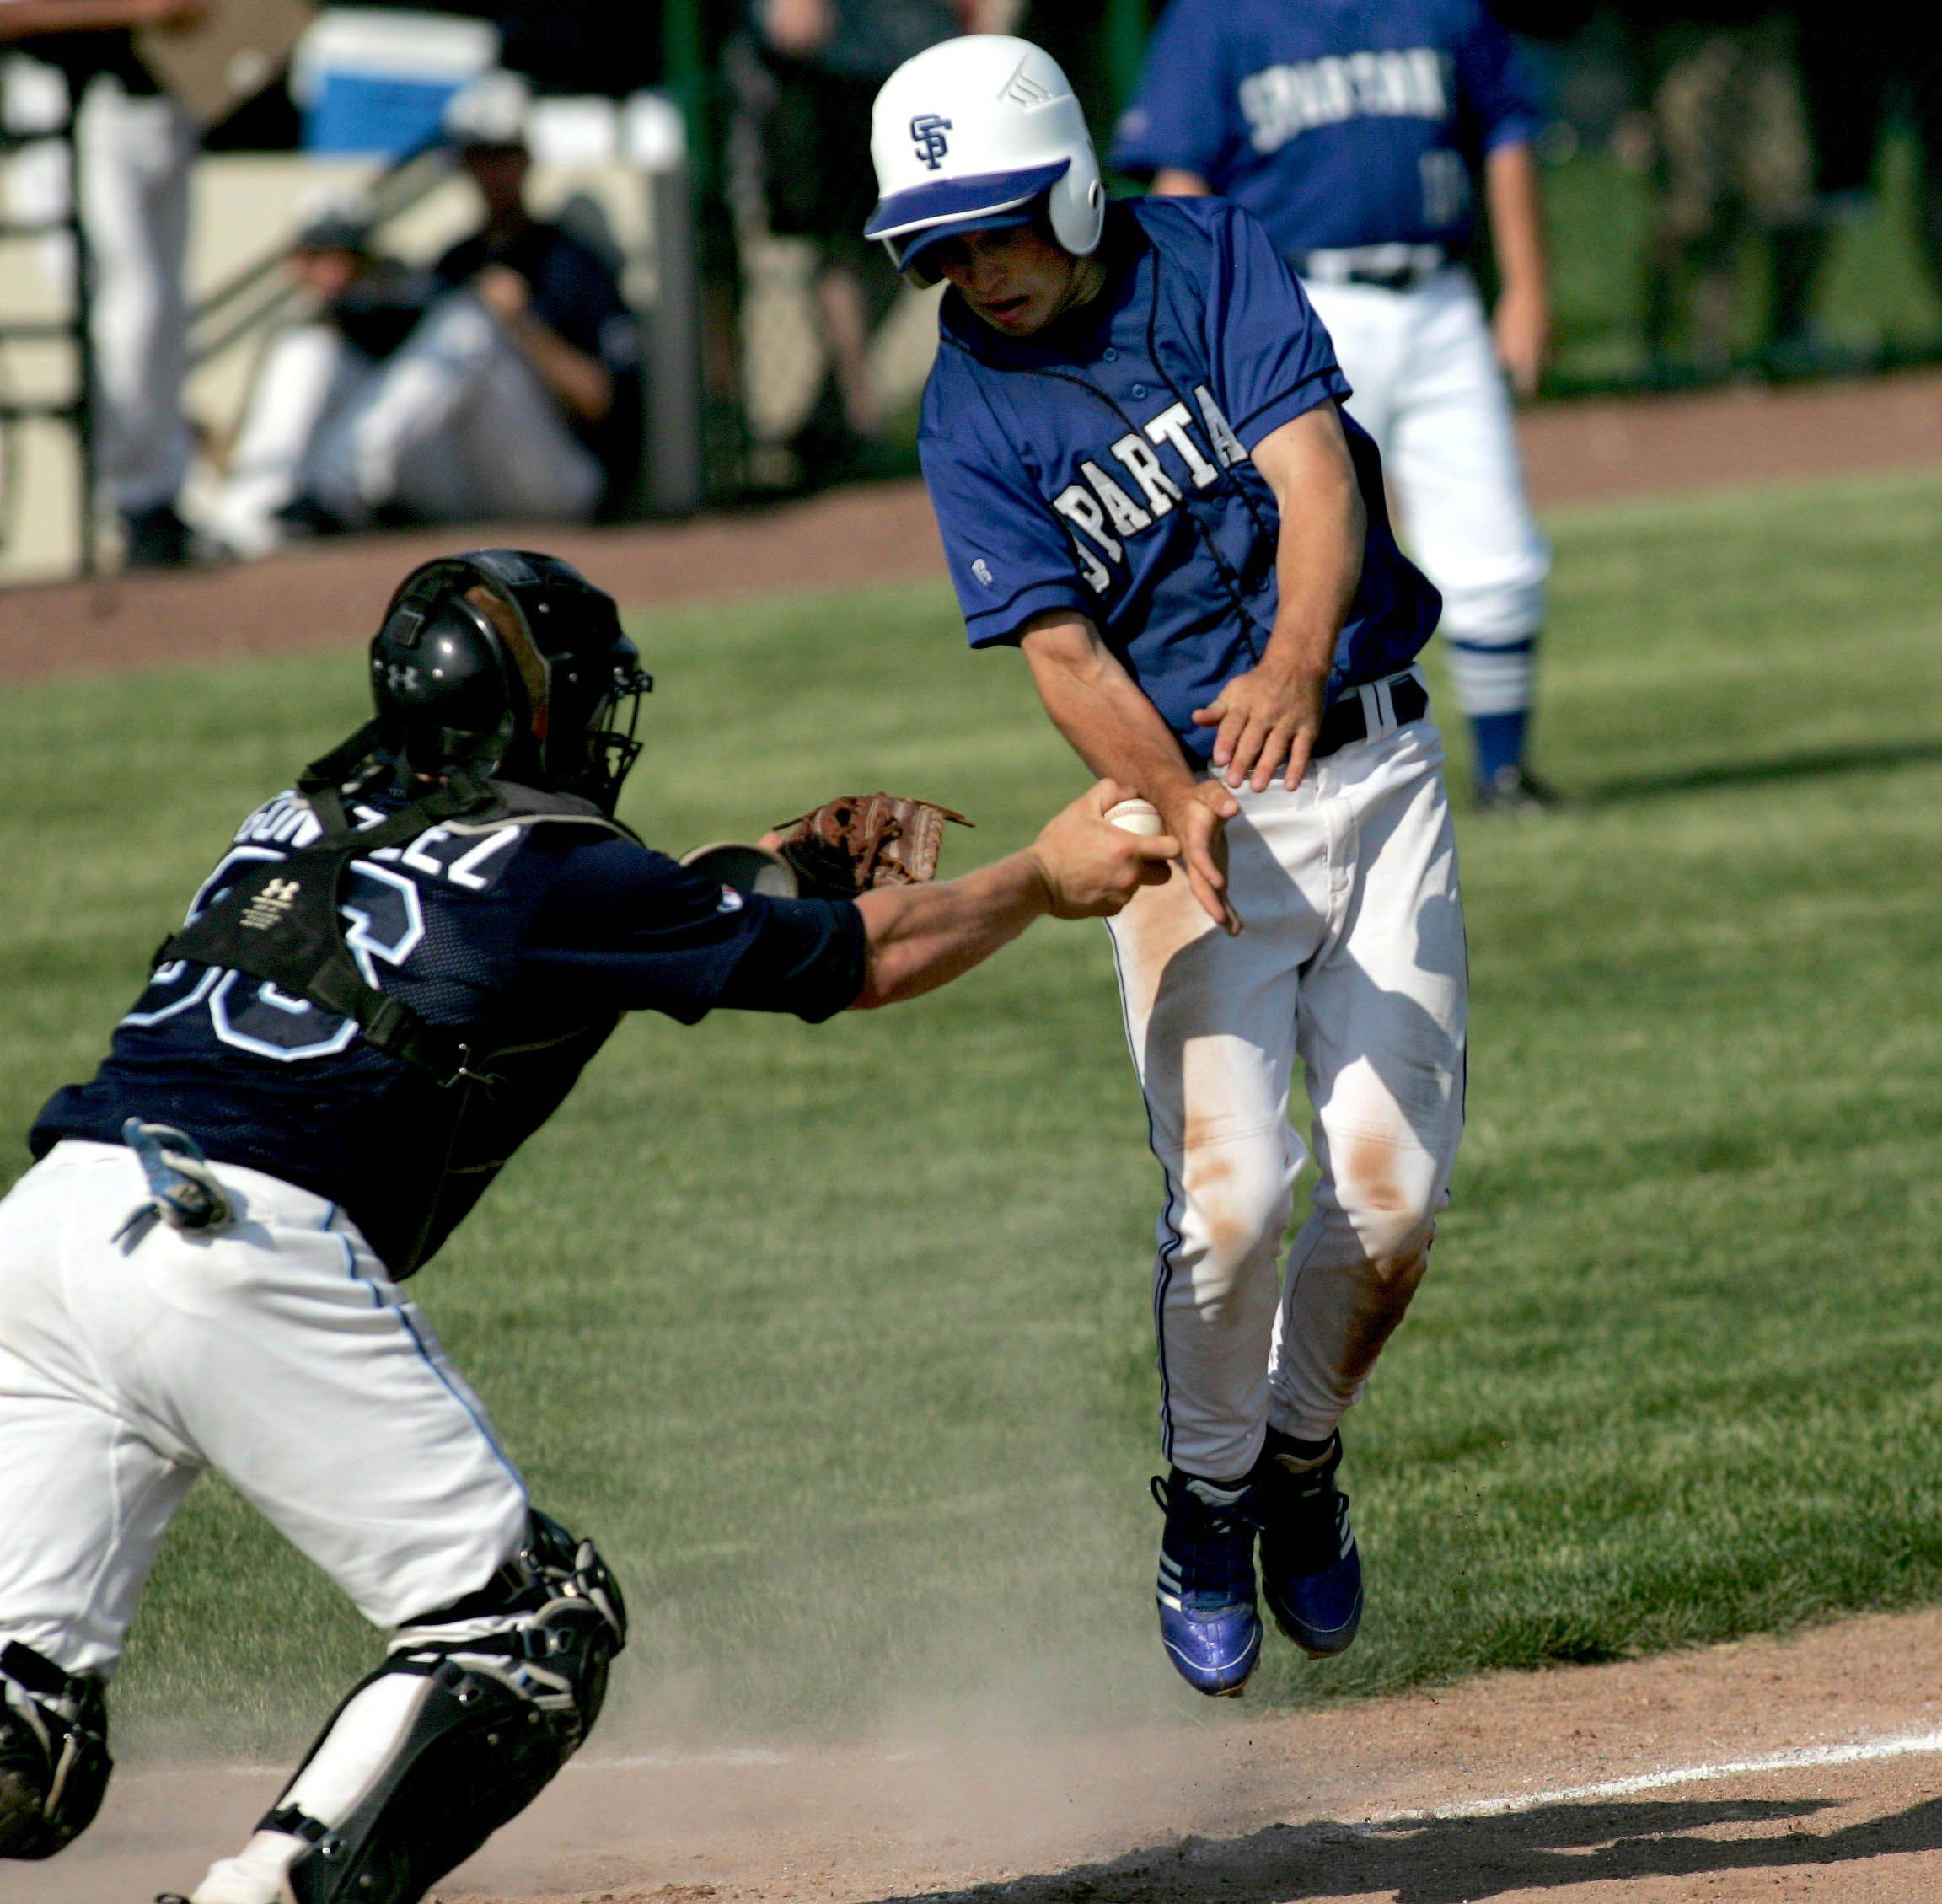 Scott Purdom of St. Francis, right, gets tagged out by Nazareth Academy catcher Justin Gonzalez at home after he tried to steal first in Class 3A supersectional baseball action Monday in Naperville.